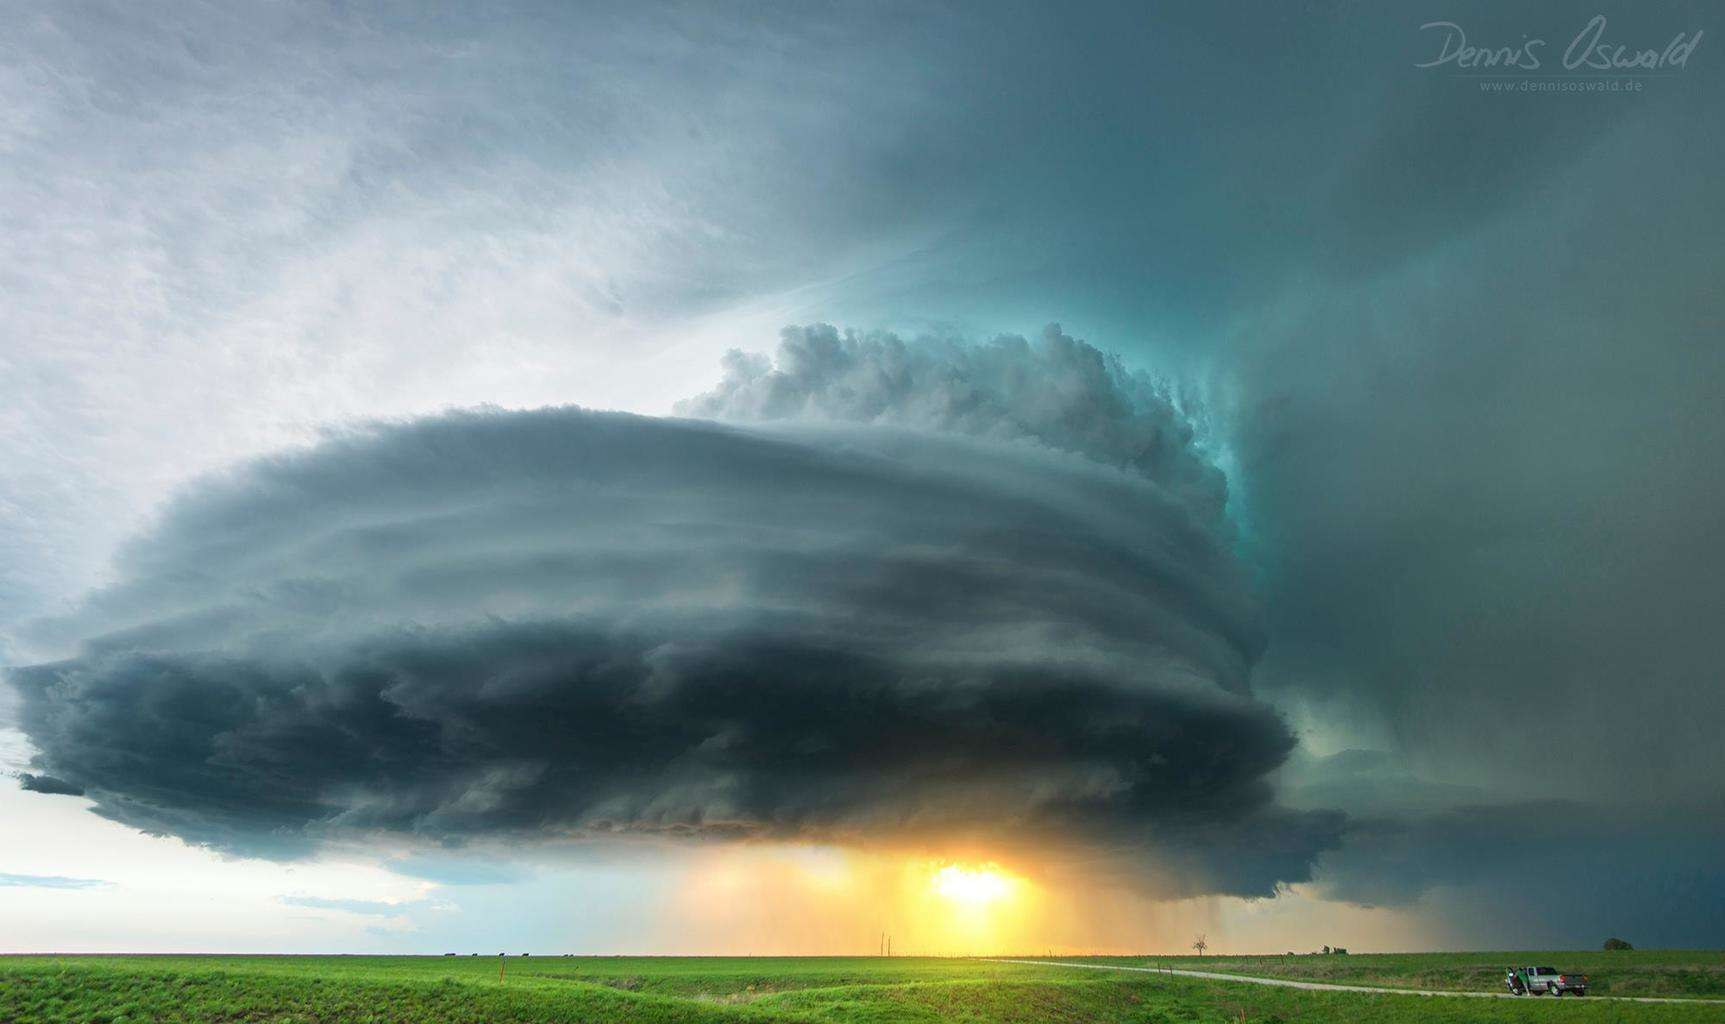 Sunset supercell just north of Howard,KS on May 10th 2014.  This was a very photogenic chaseday in southeast Kansas.